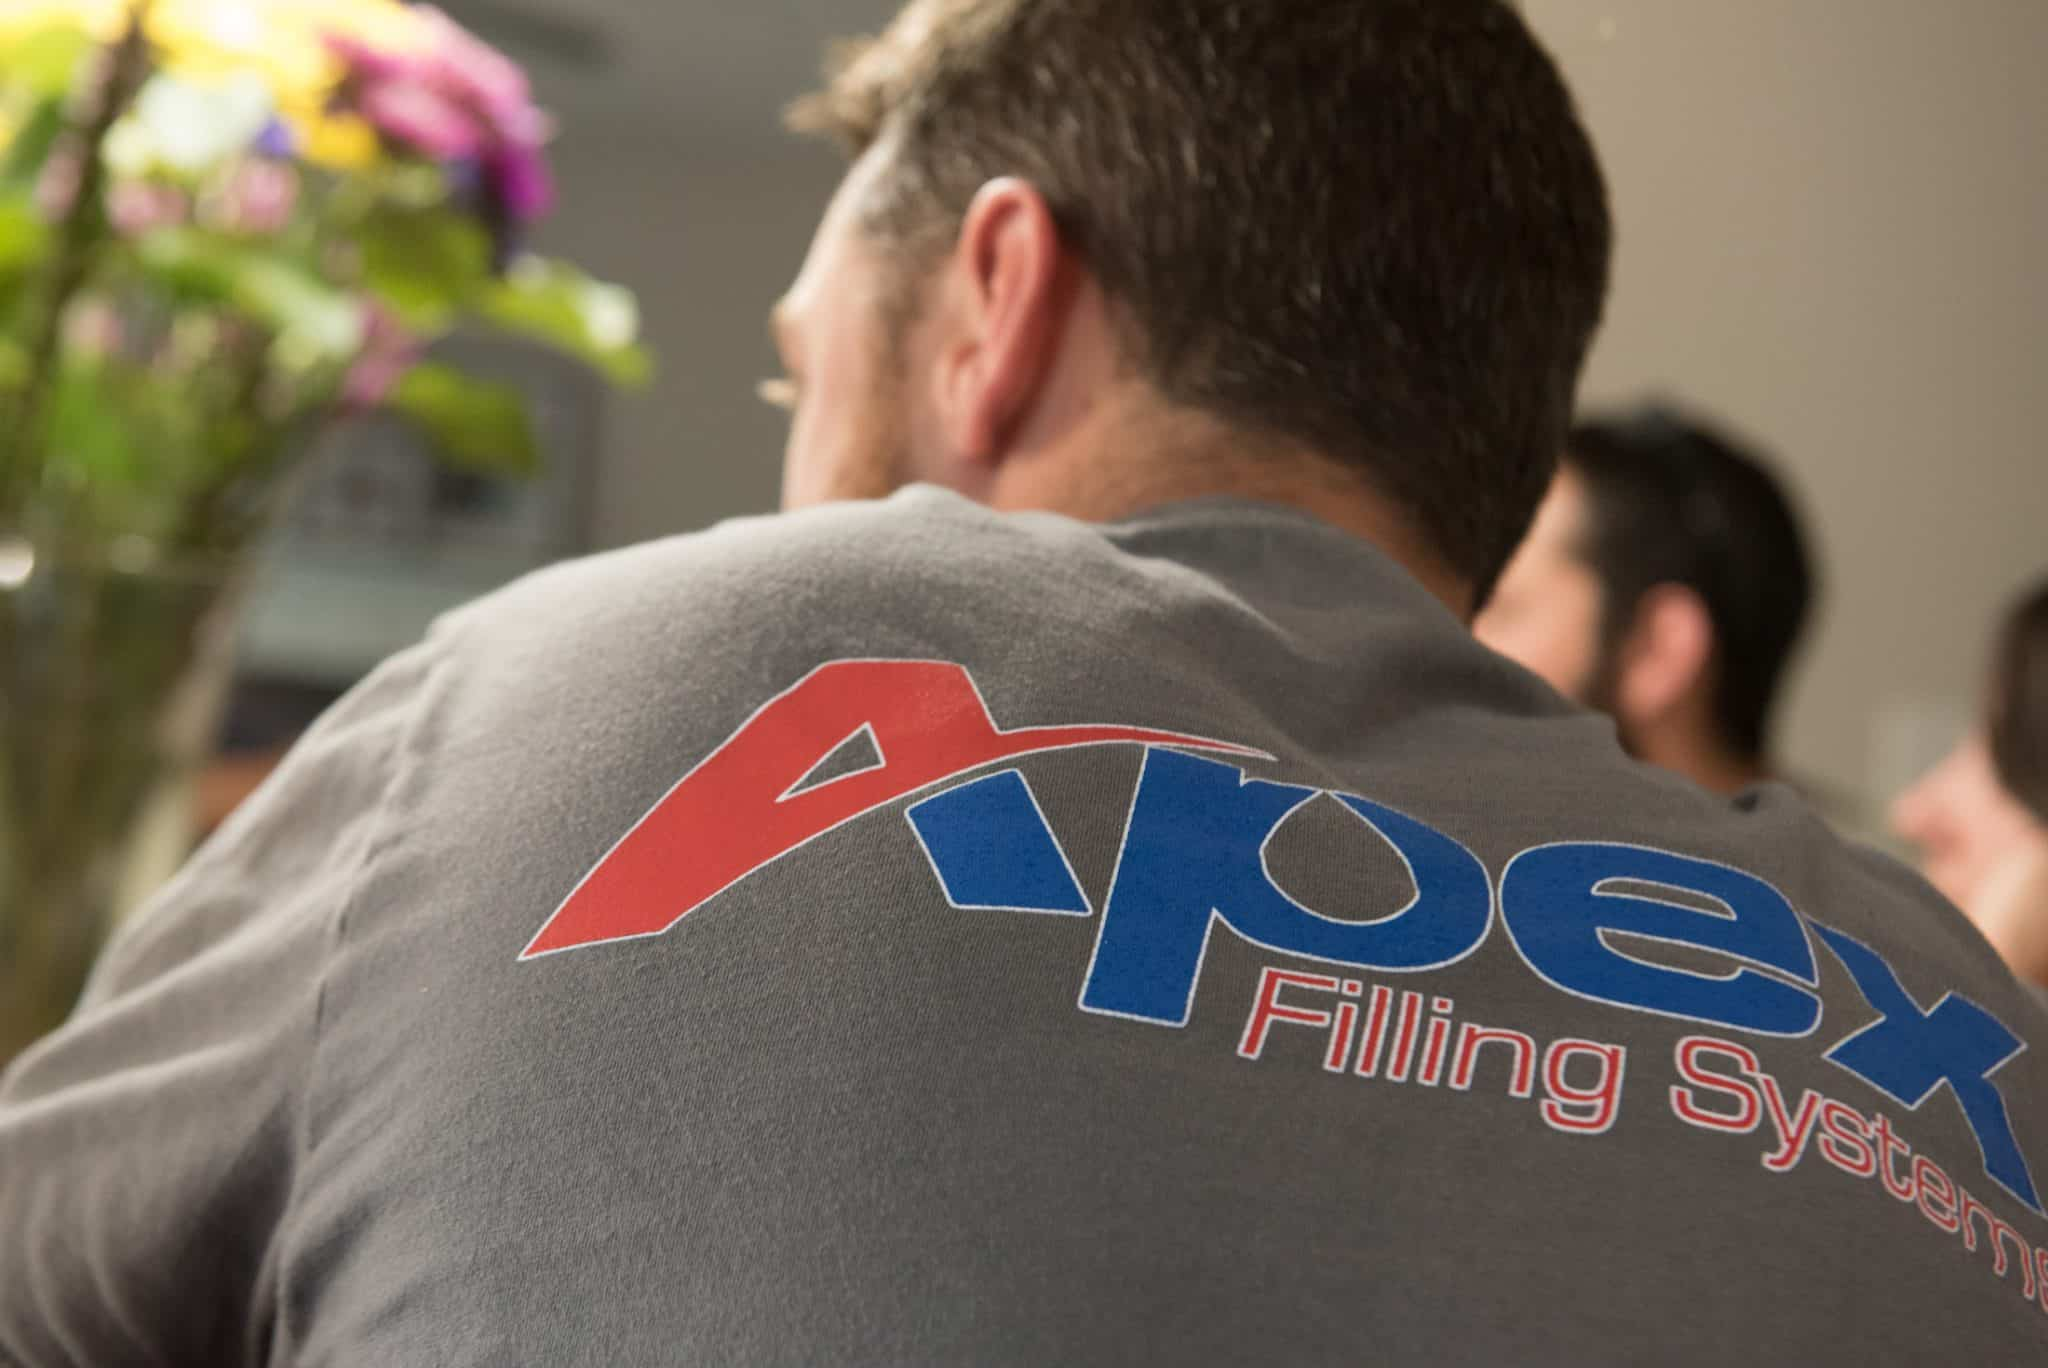 Closeup of an Apex Filling Systems t-shirt